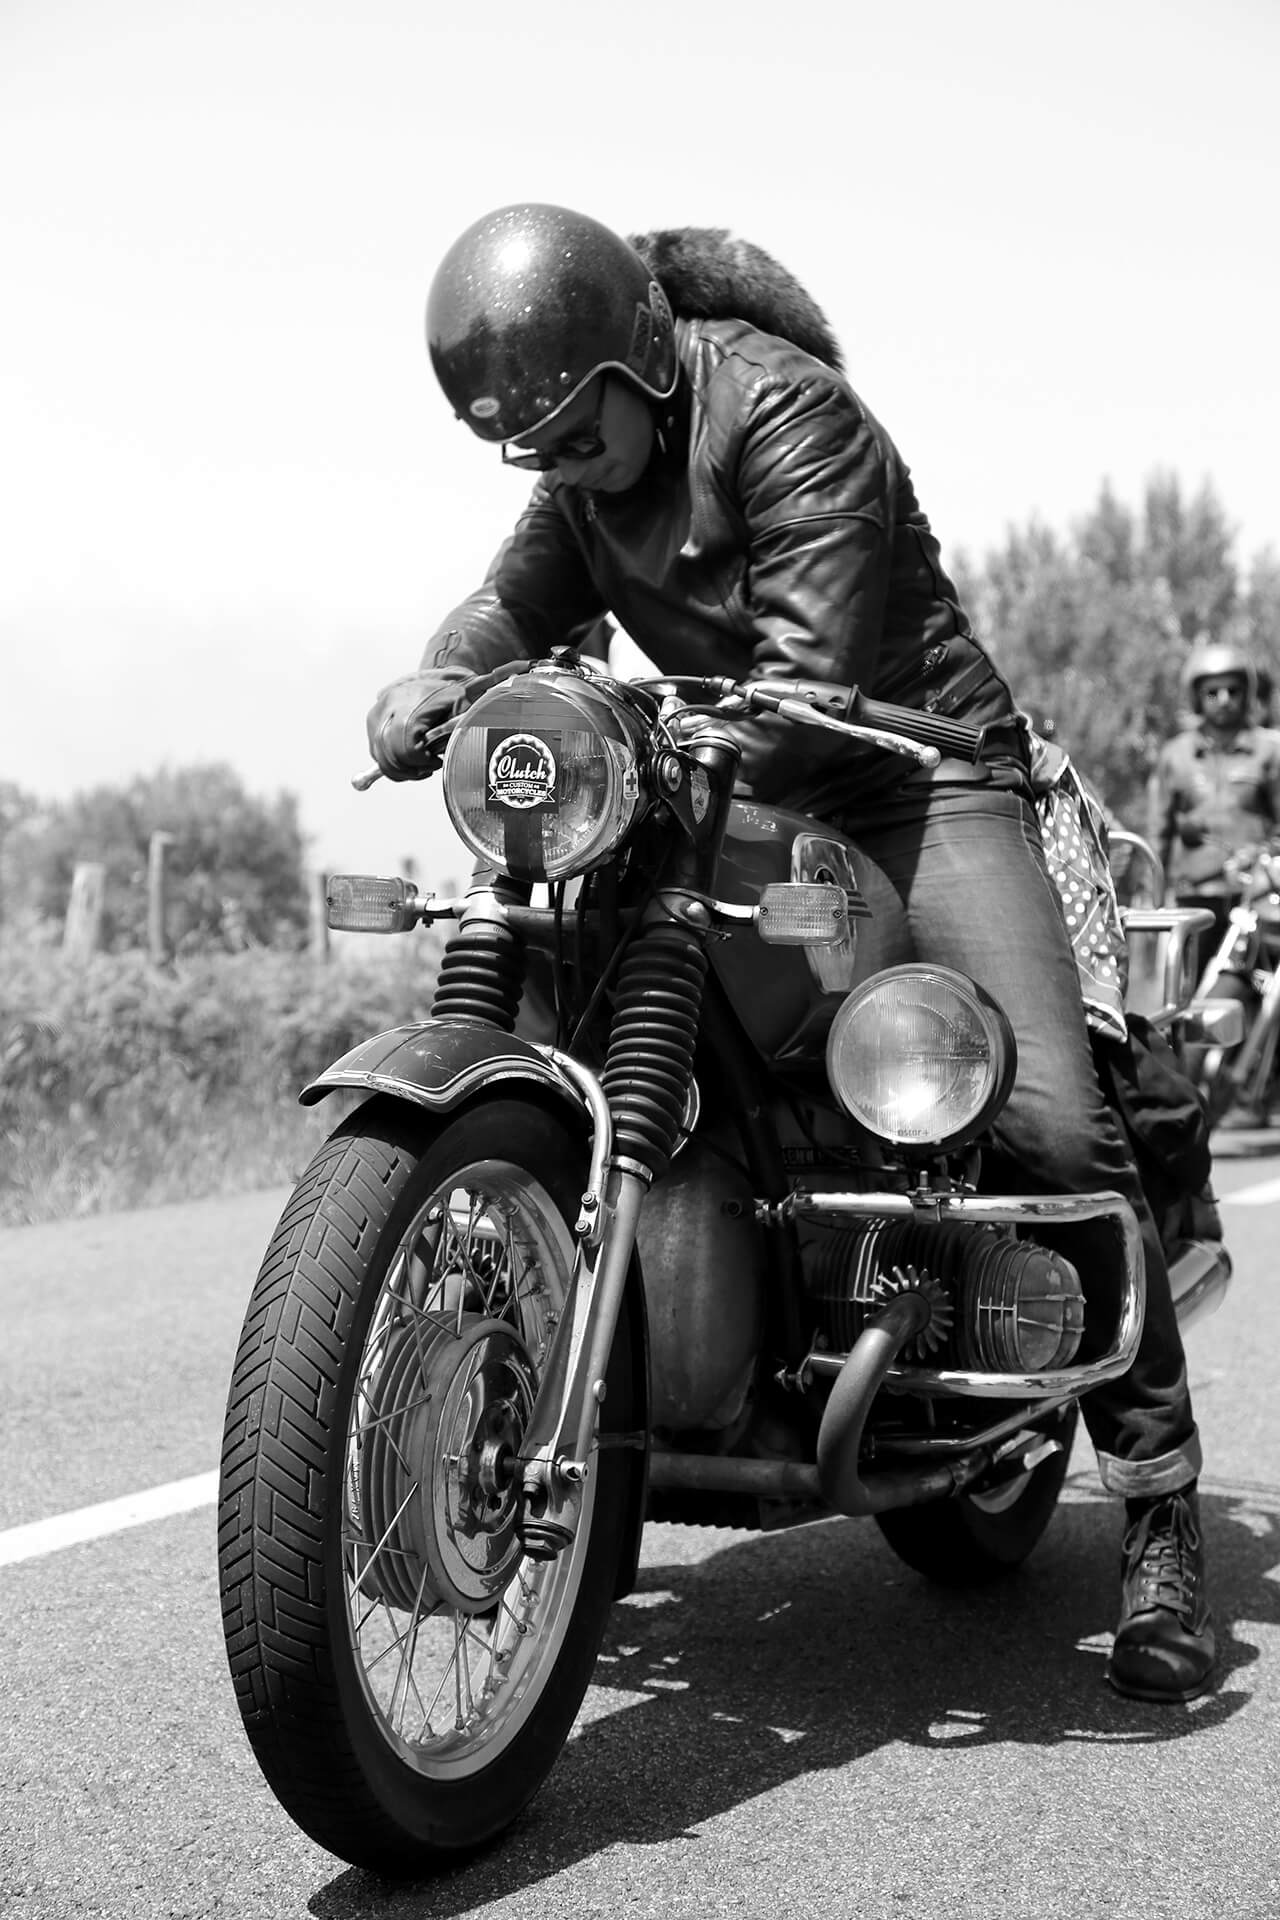 Wheels, Waves, Wheels and Waves, fashion, helmet, sparkle, biker, motorcycle, bike, france, film, photography, event, WeAreShuffle, gentleman